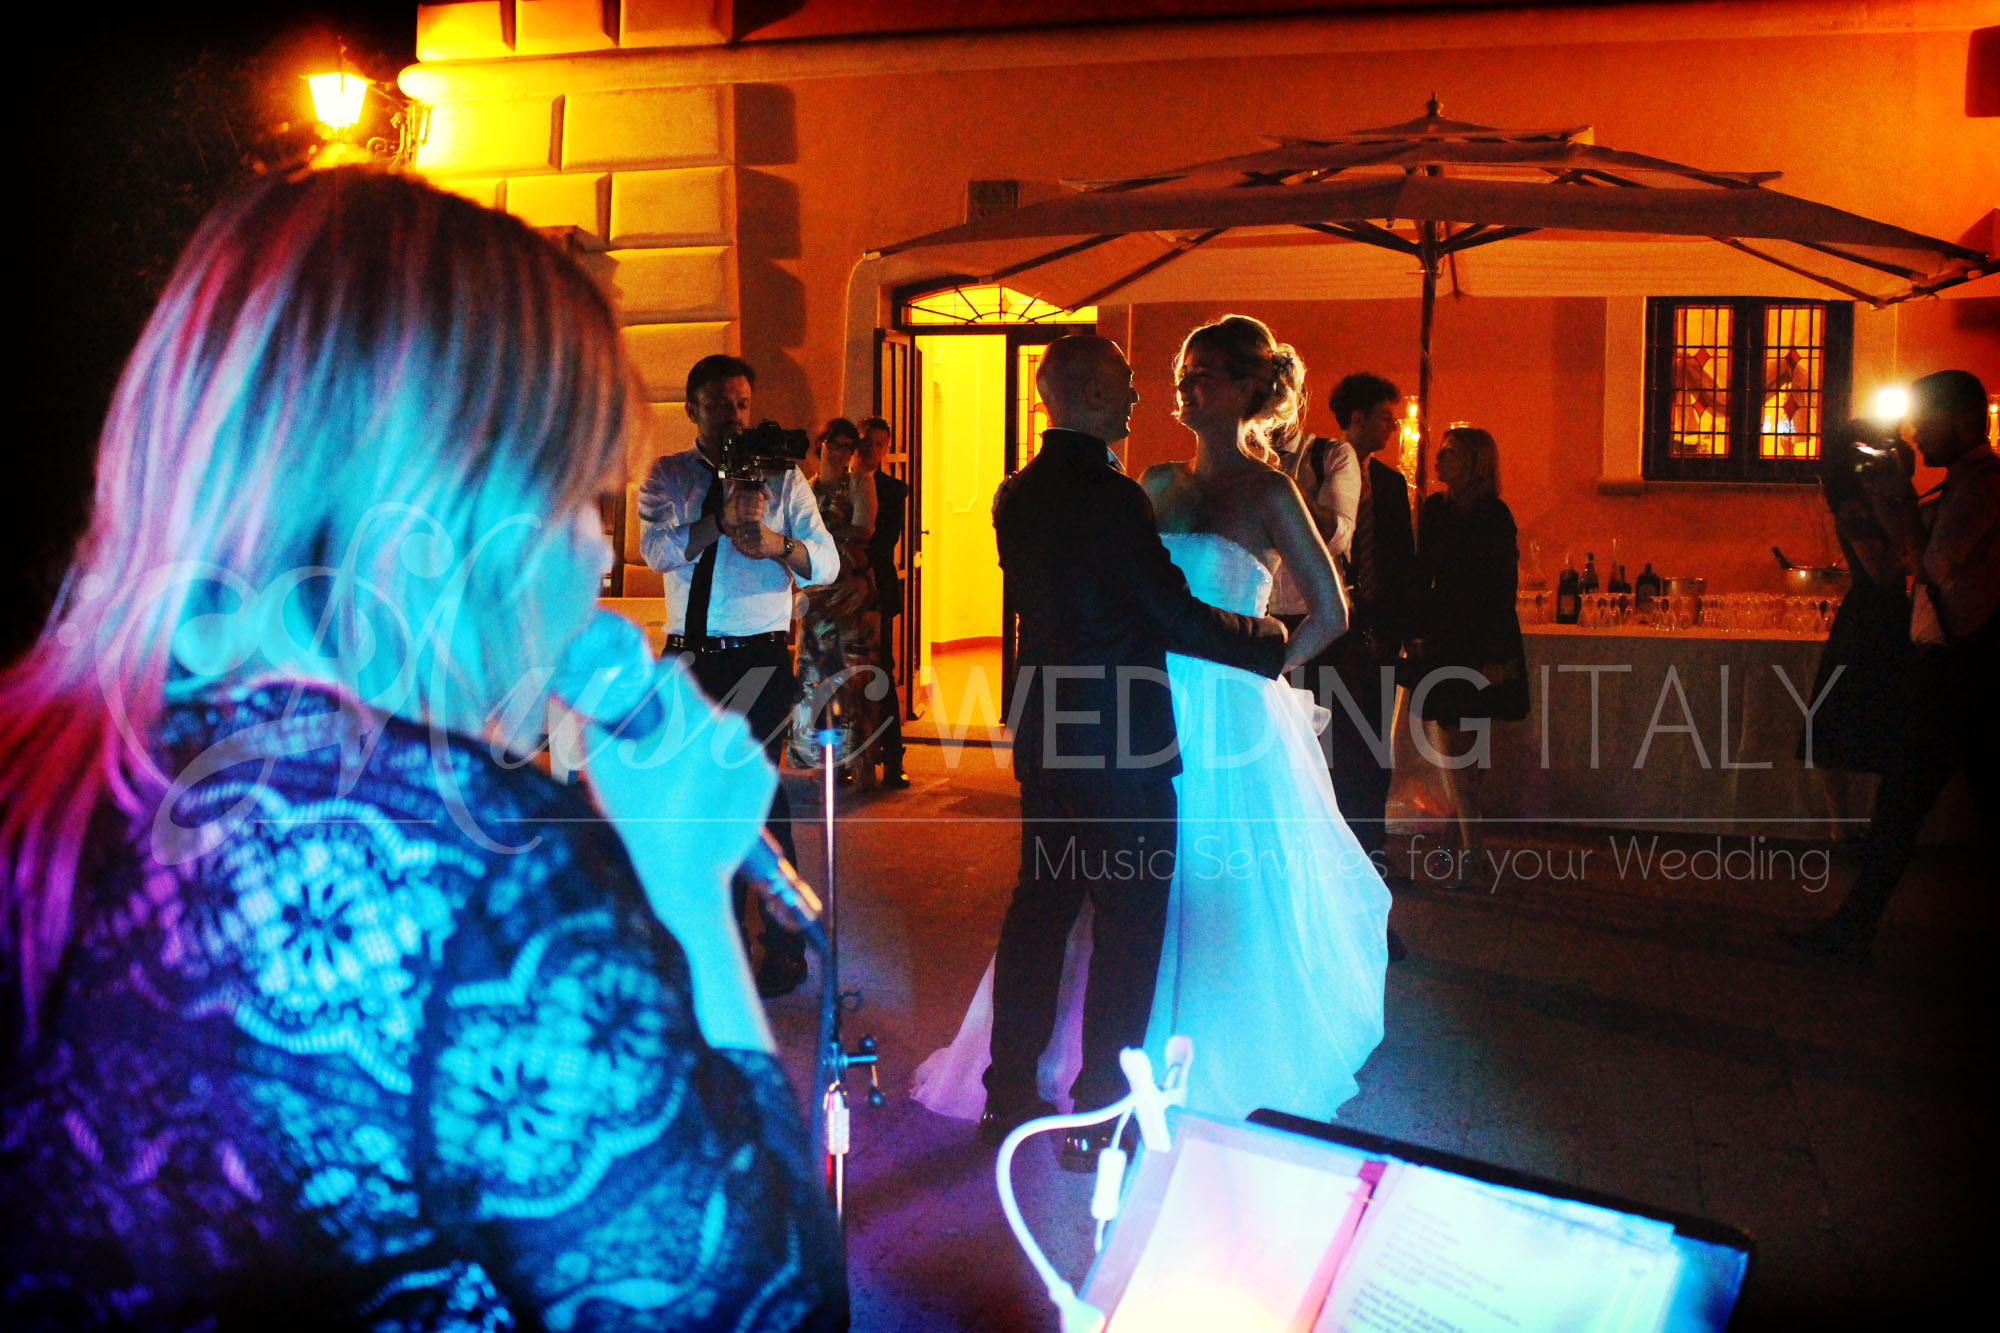 firts dance wedding pianobar - matrimonio roma italia